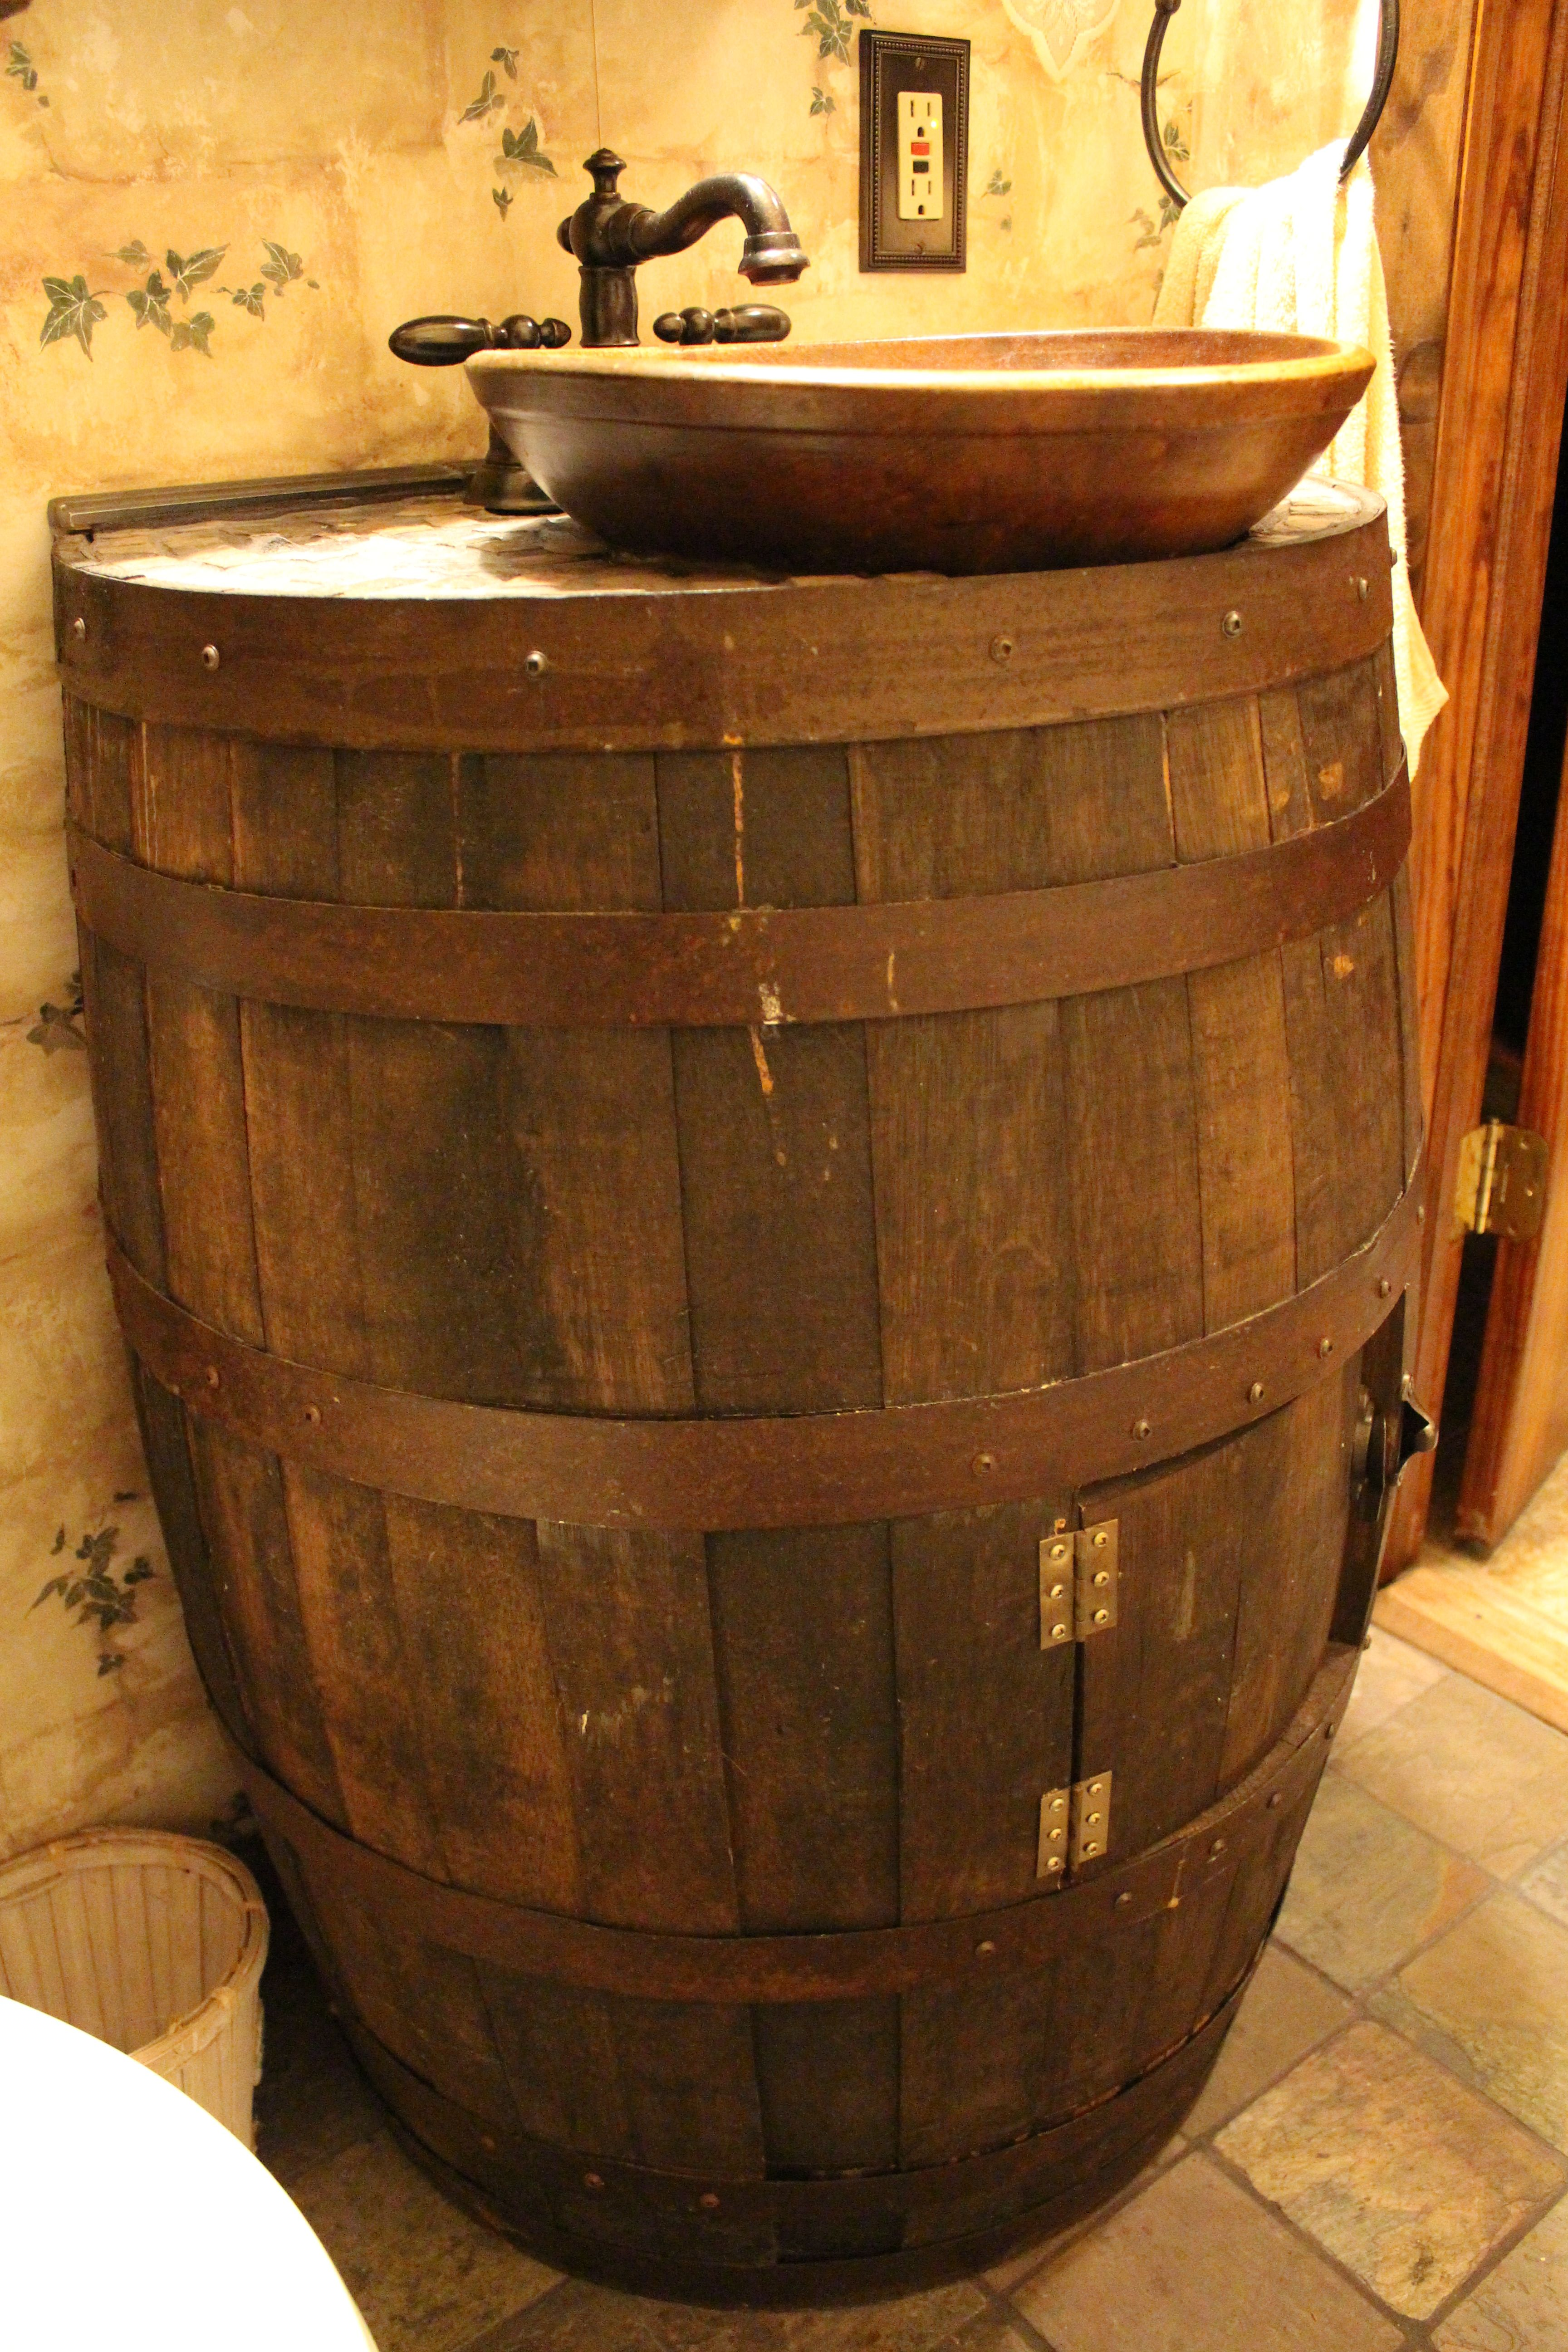 Pin By Ellenwood Homestead On Primitive Decorating My Home Primitive Bathrooms Wine Barrel Sink Wine Barrel